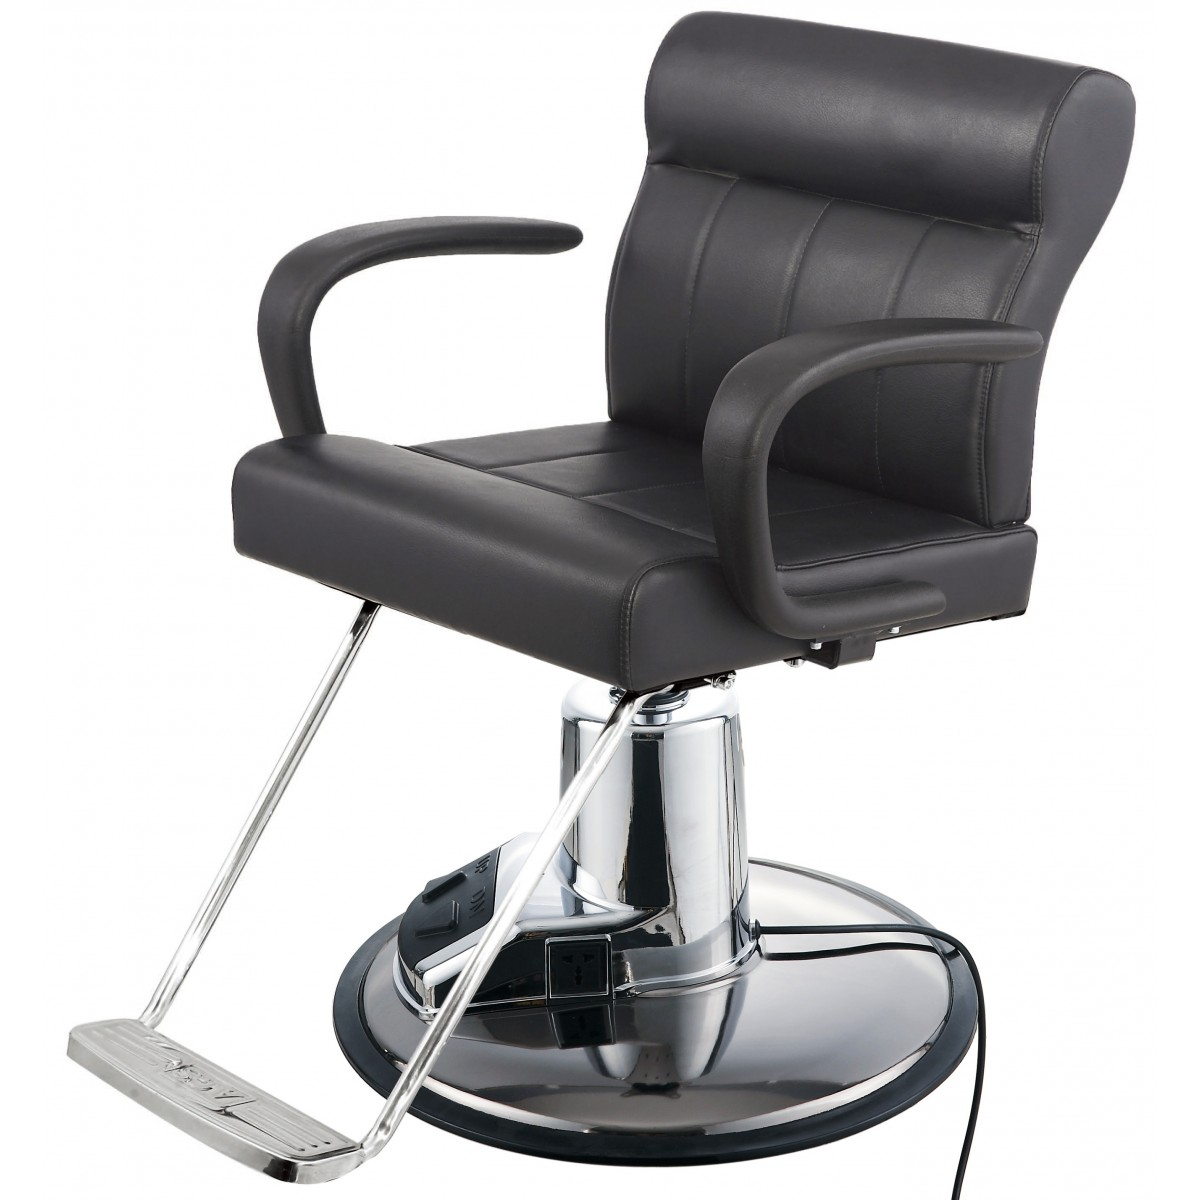 """LUNA' Salon Styling Chair w/ Electric Round Base"